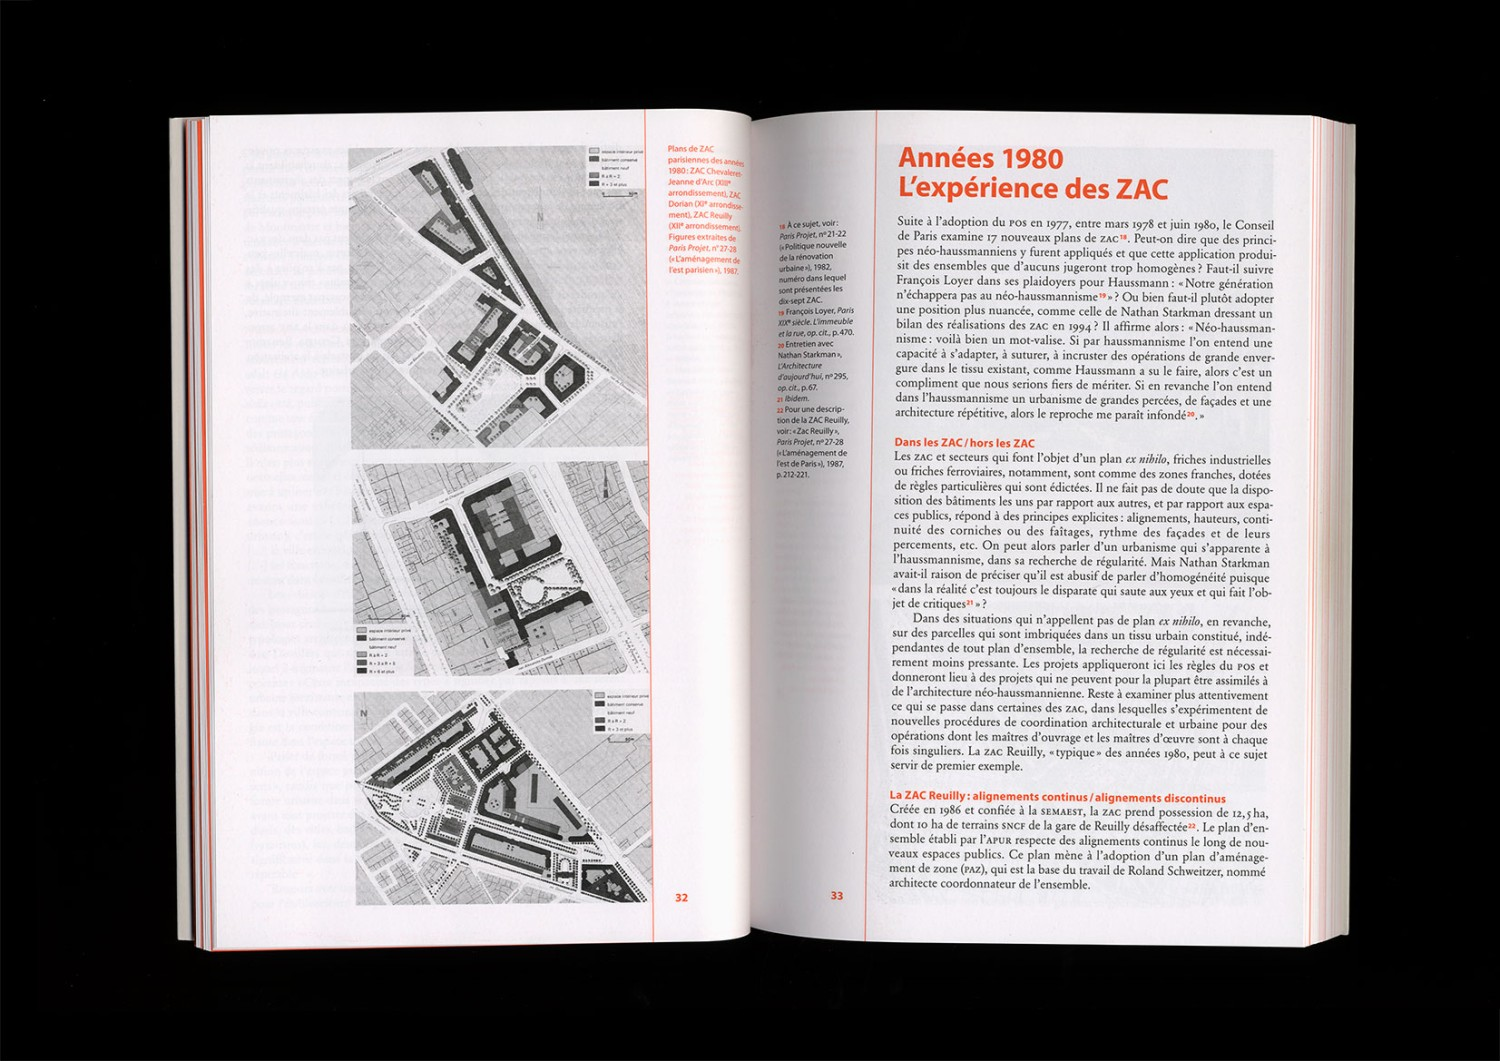 <p><em>Ou va la ville aujourd'hui</em>, Jacques Lucan, Collection : Etudes et perspectives. Photo © Building Paris.</p>